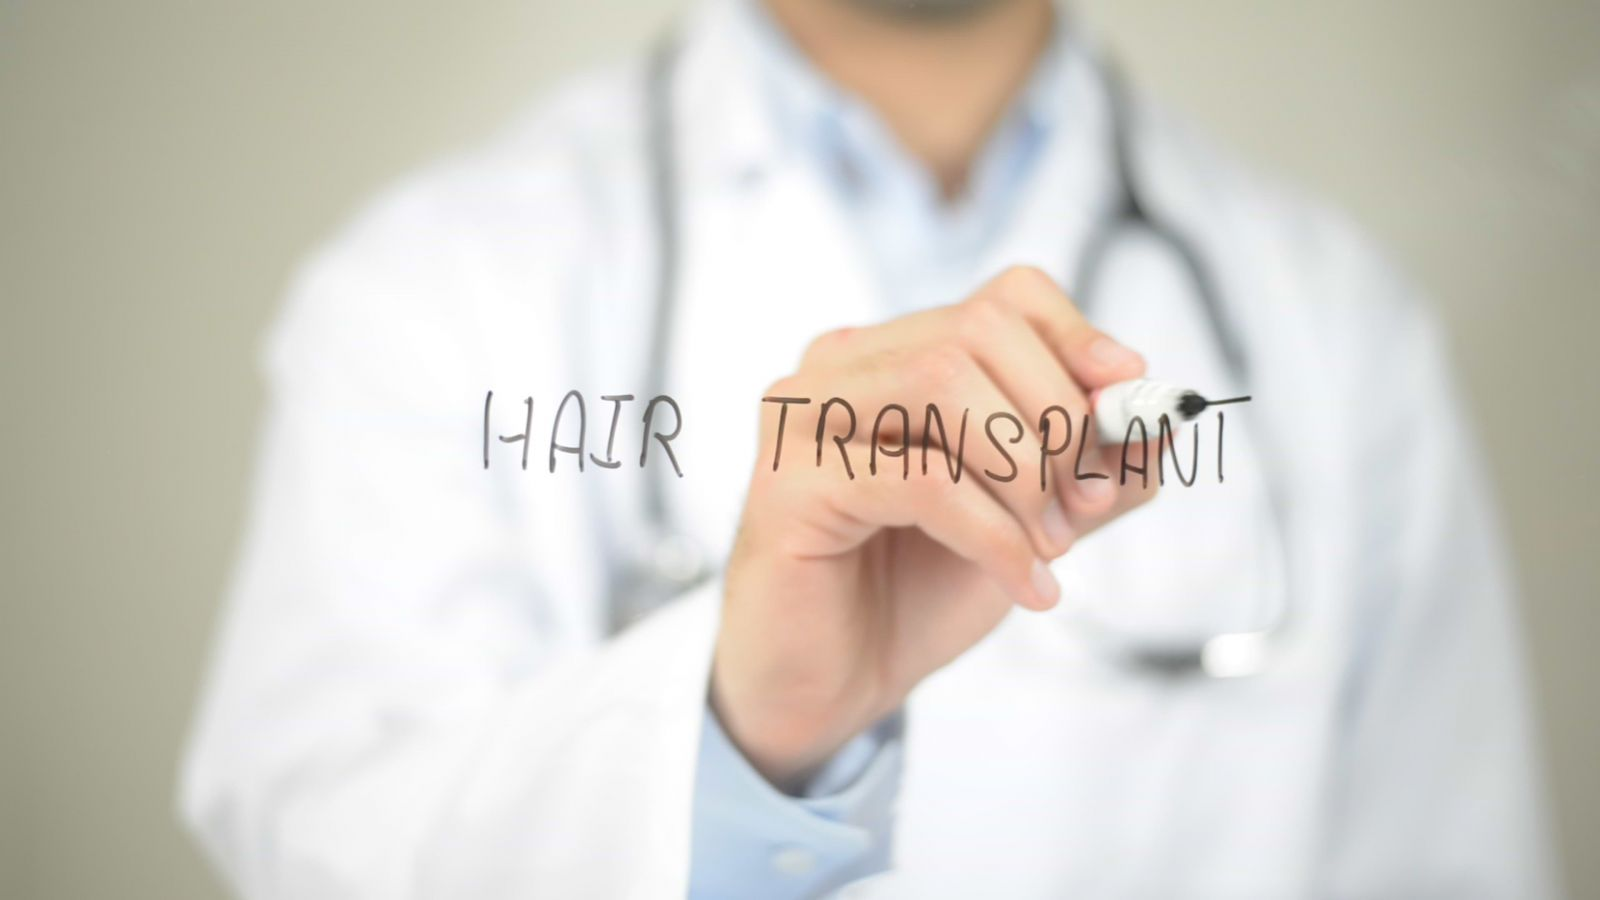 BEST HAIR TRANSPLANT TOURISM IN TURKEY 2020: WHAT IS A HAIR TRANSPLANT? HOW MUCH DOES IT COST?